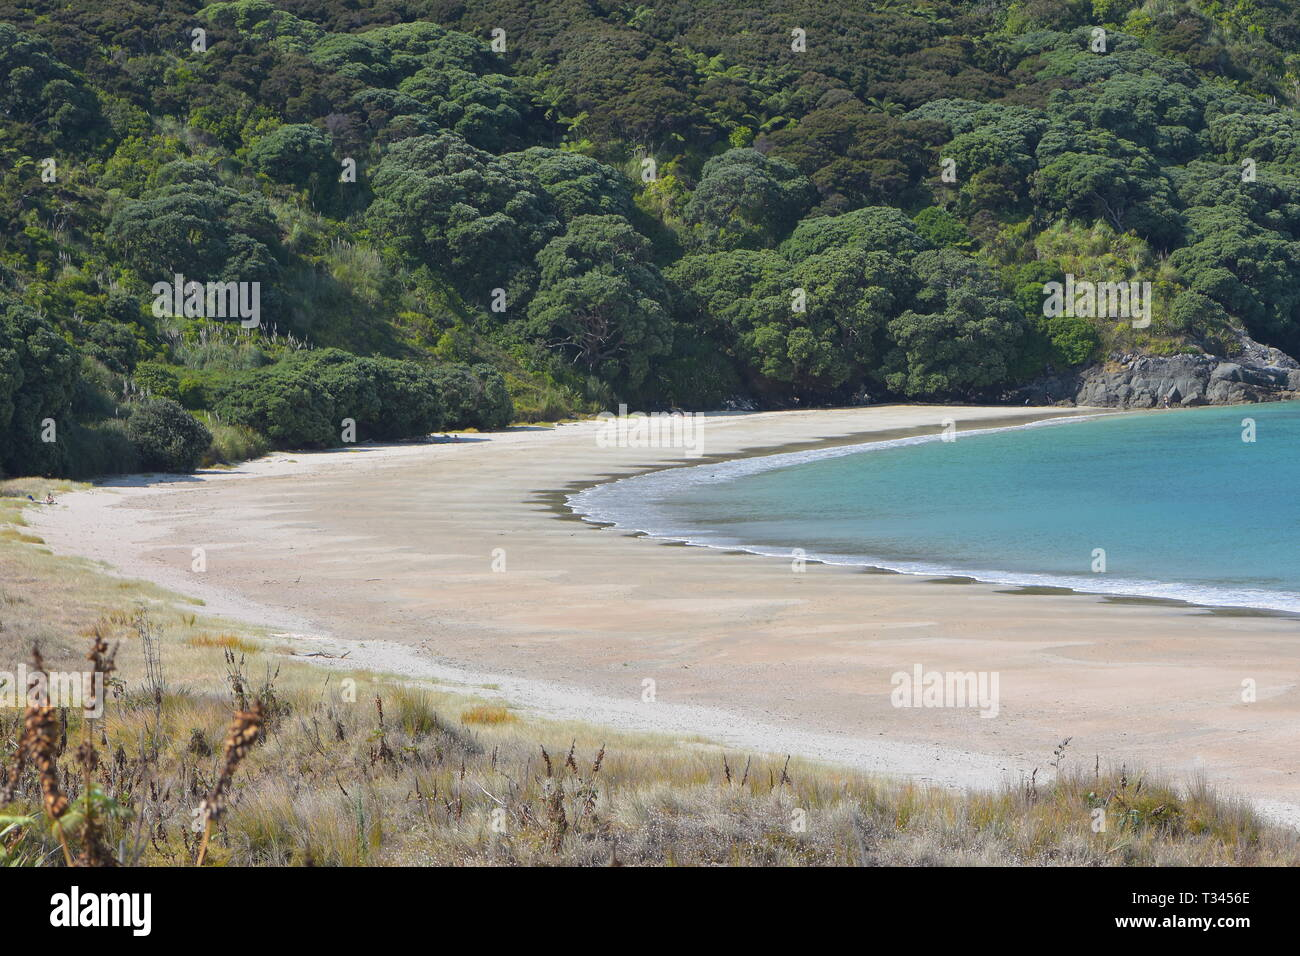 Empty pacific bay with flat sandy beach and flat water and native bush in background. - Stock Image